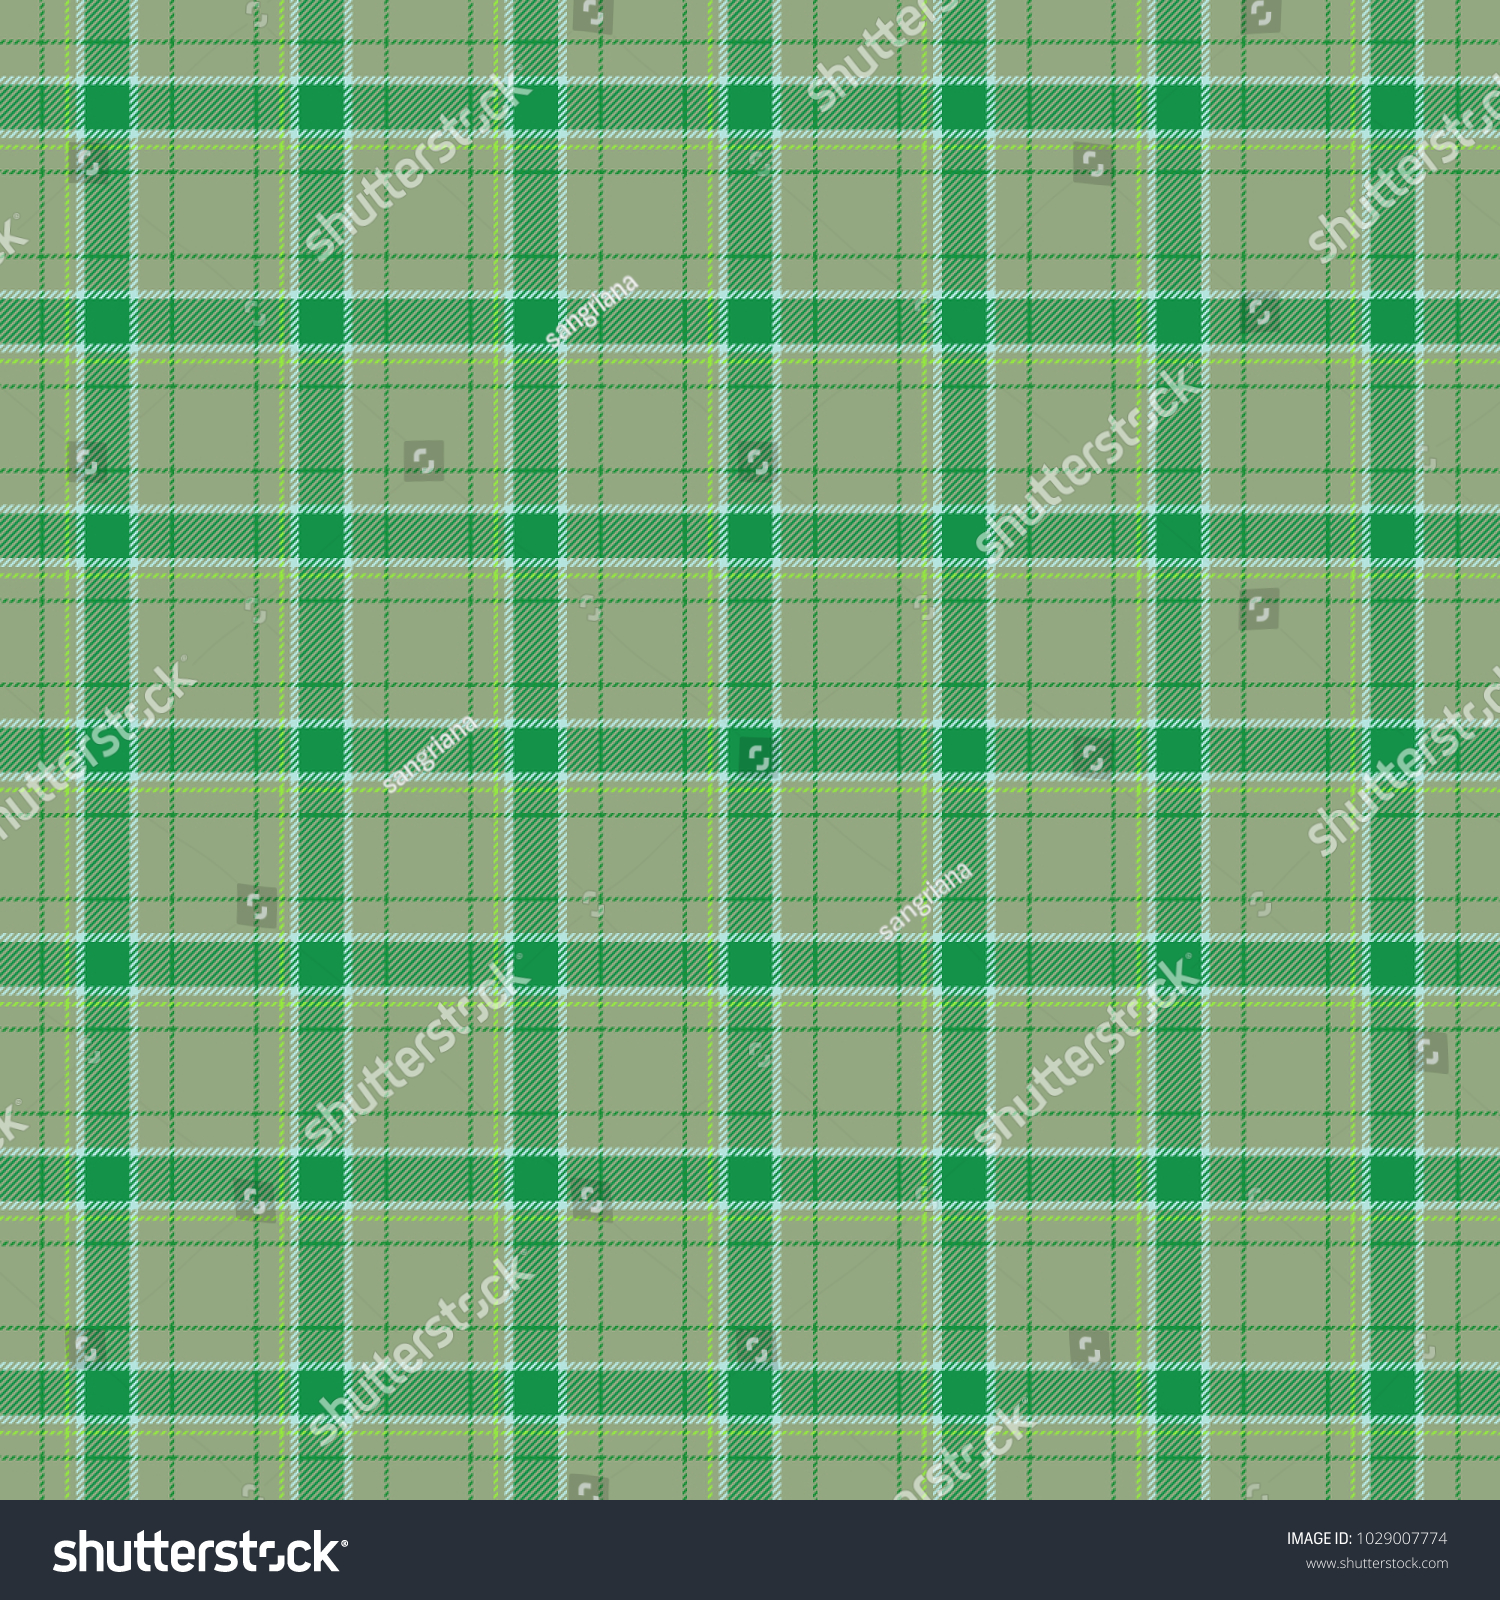 Green Bed Sheets Texture. Green And Grey Checkered Bed Linen Cloth Rural  Style Pattern Texture